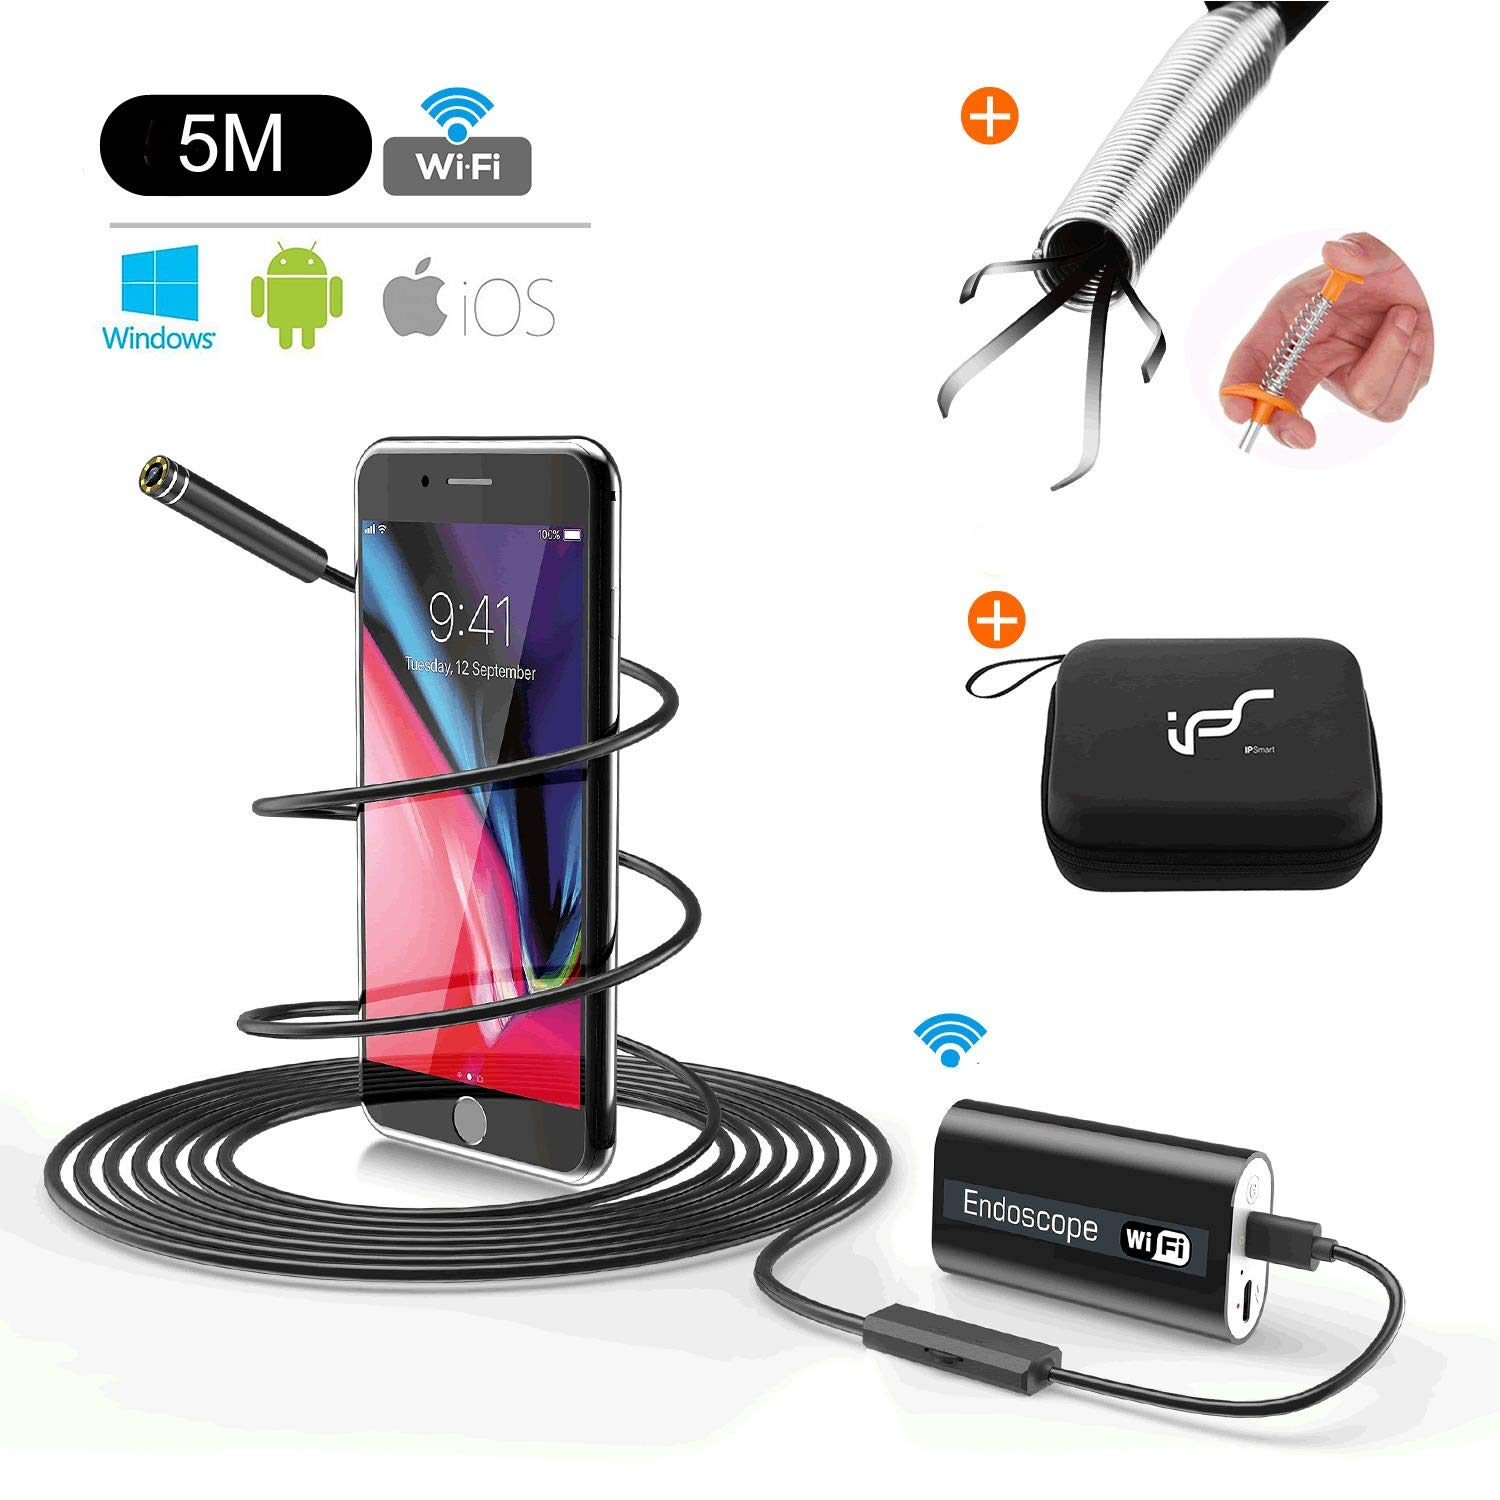 Endoscope Android WIFI USB Waterproof Camera Inspection Etanche Sans Fil Camé ra Snake Boroscope avec 24'Pince Ramassage Flexible Pince de Pré hension 720p HD 2.0MP pour Android, IOS, iPhone 16.4ft (5M) IPS IP SMART